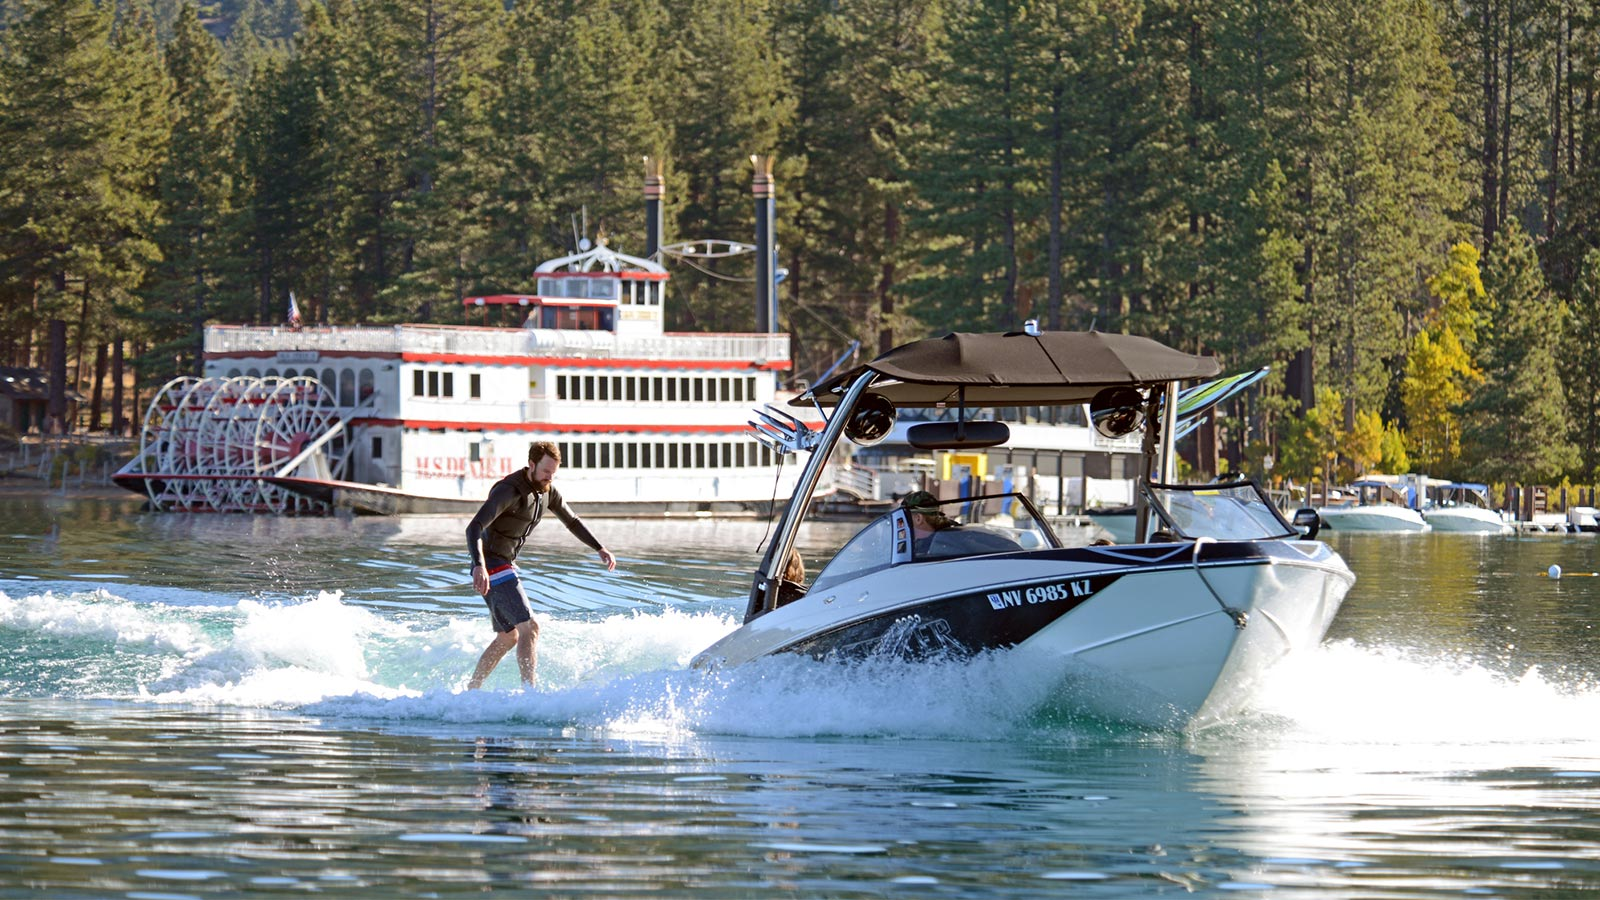 Powerboats at Zephyr Cove Marina, Lake Tahoe